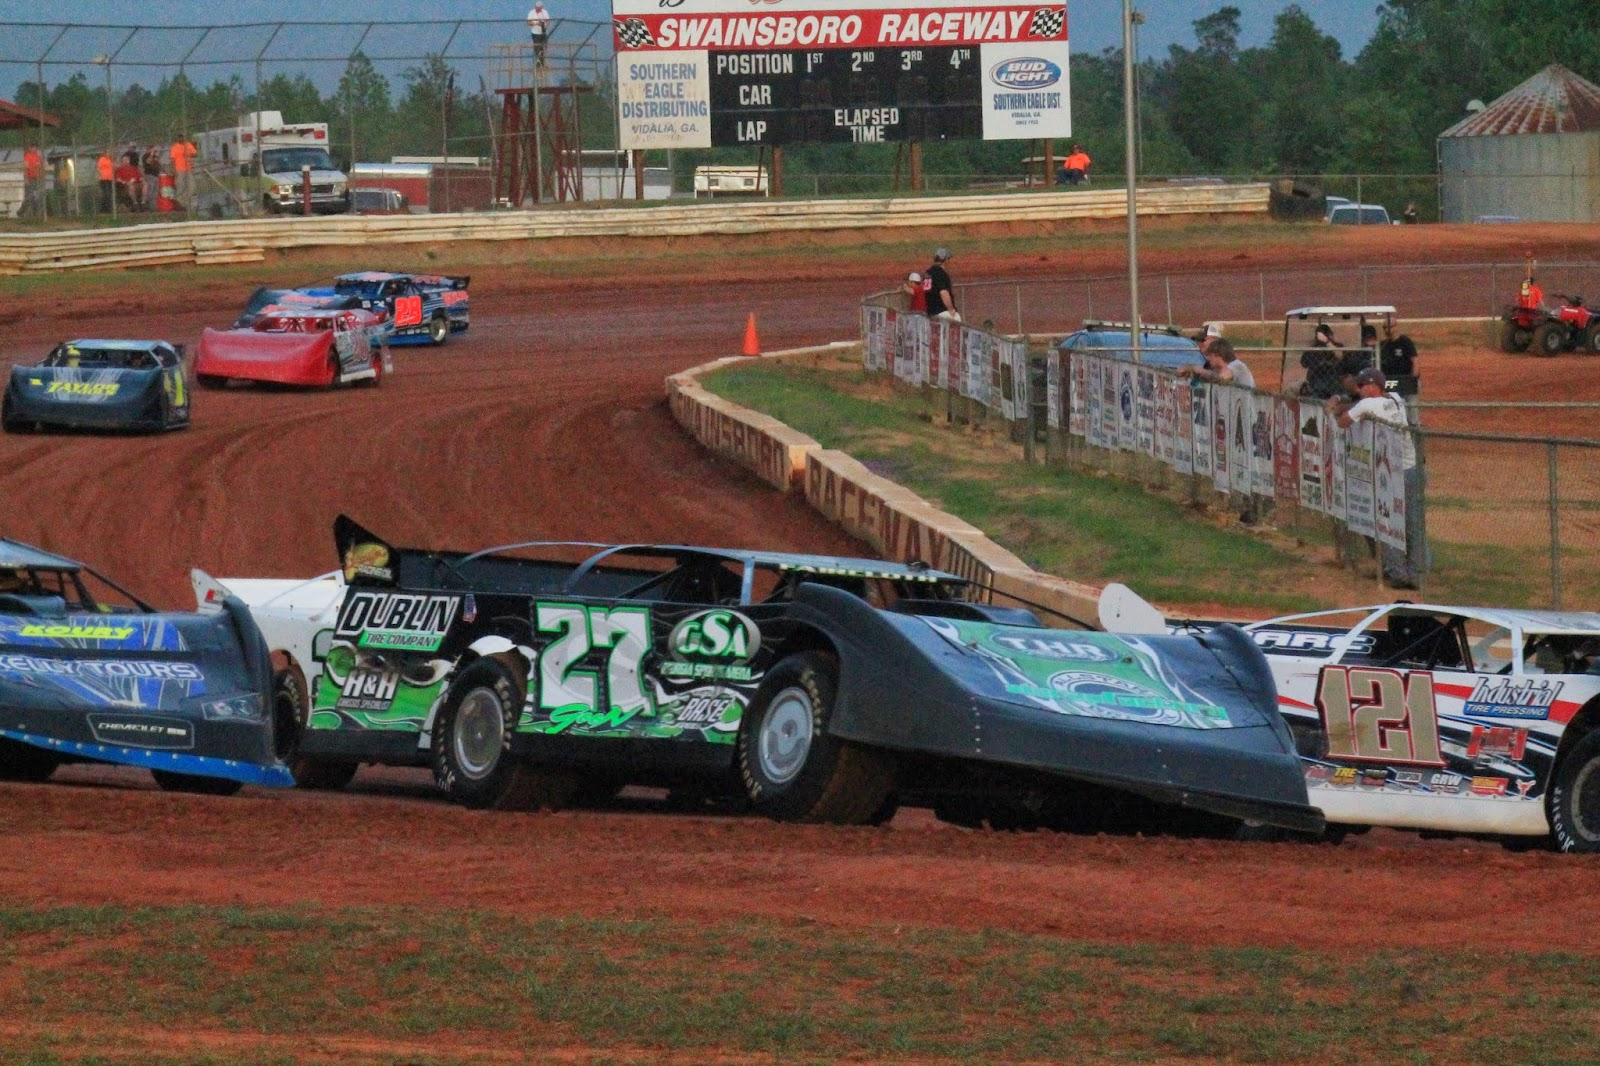 #WkndInReview- PL Pulls in P1 at Swainsboro Raceway 4/11